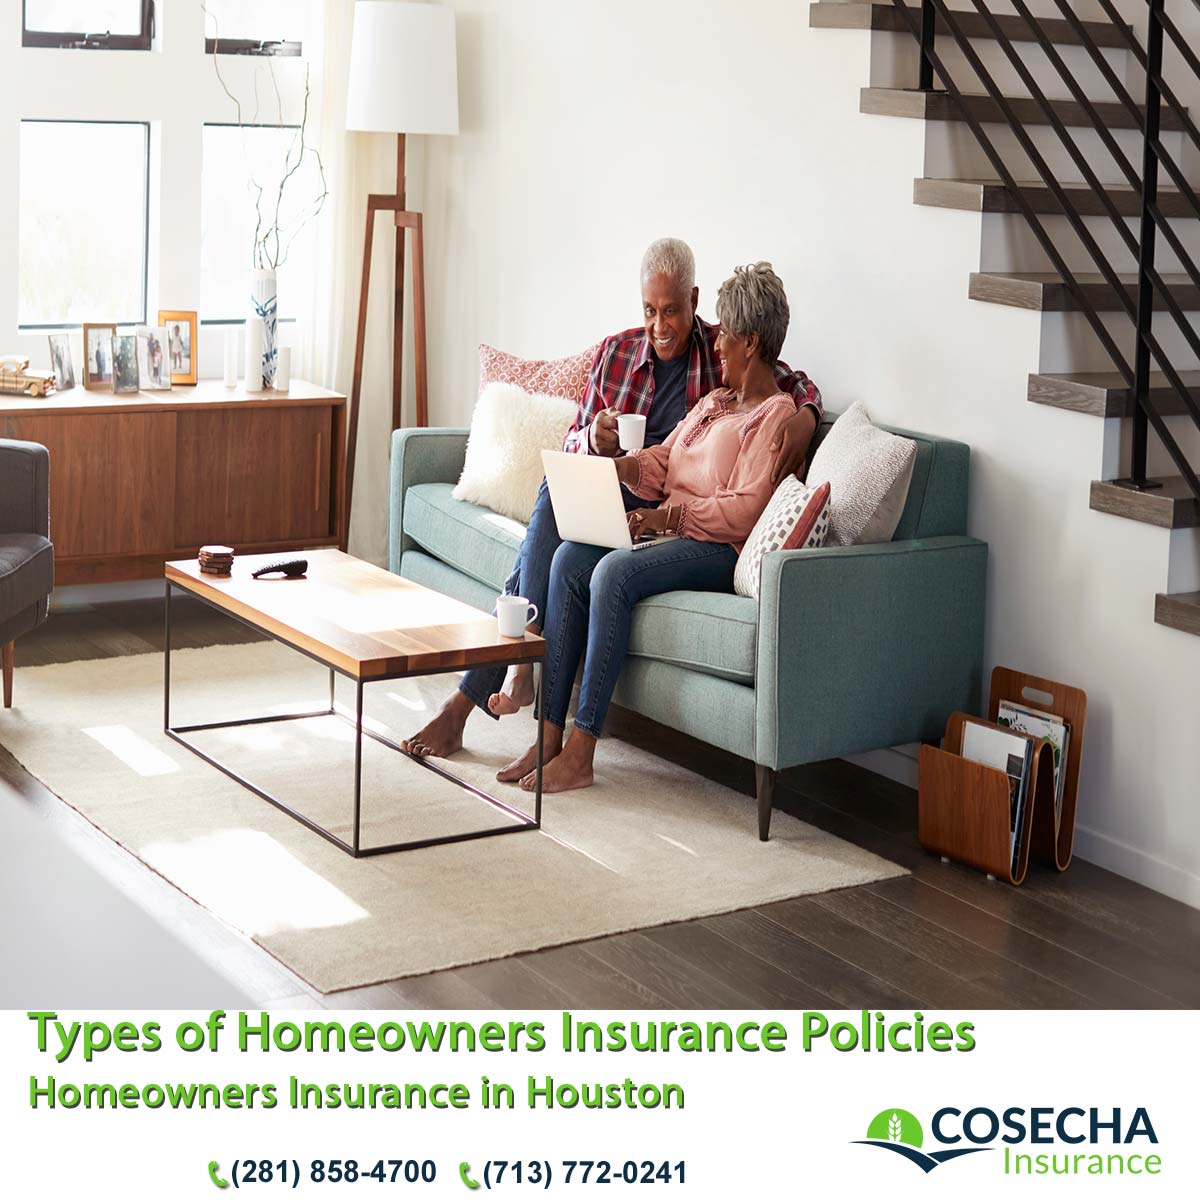 29 Homeowners Insurance in Houston